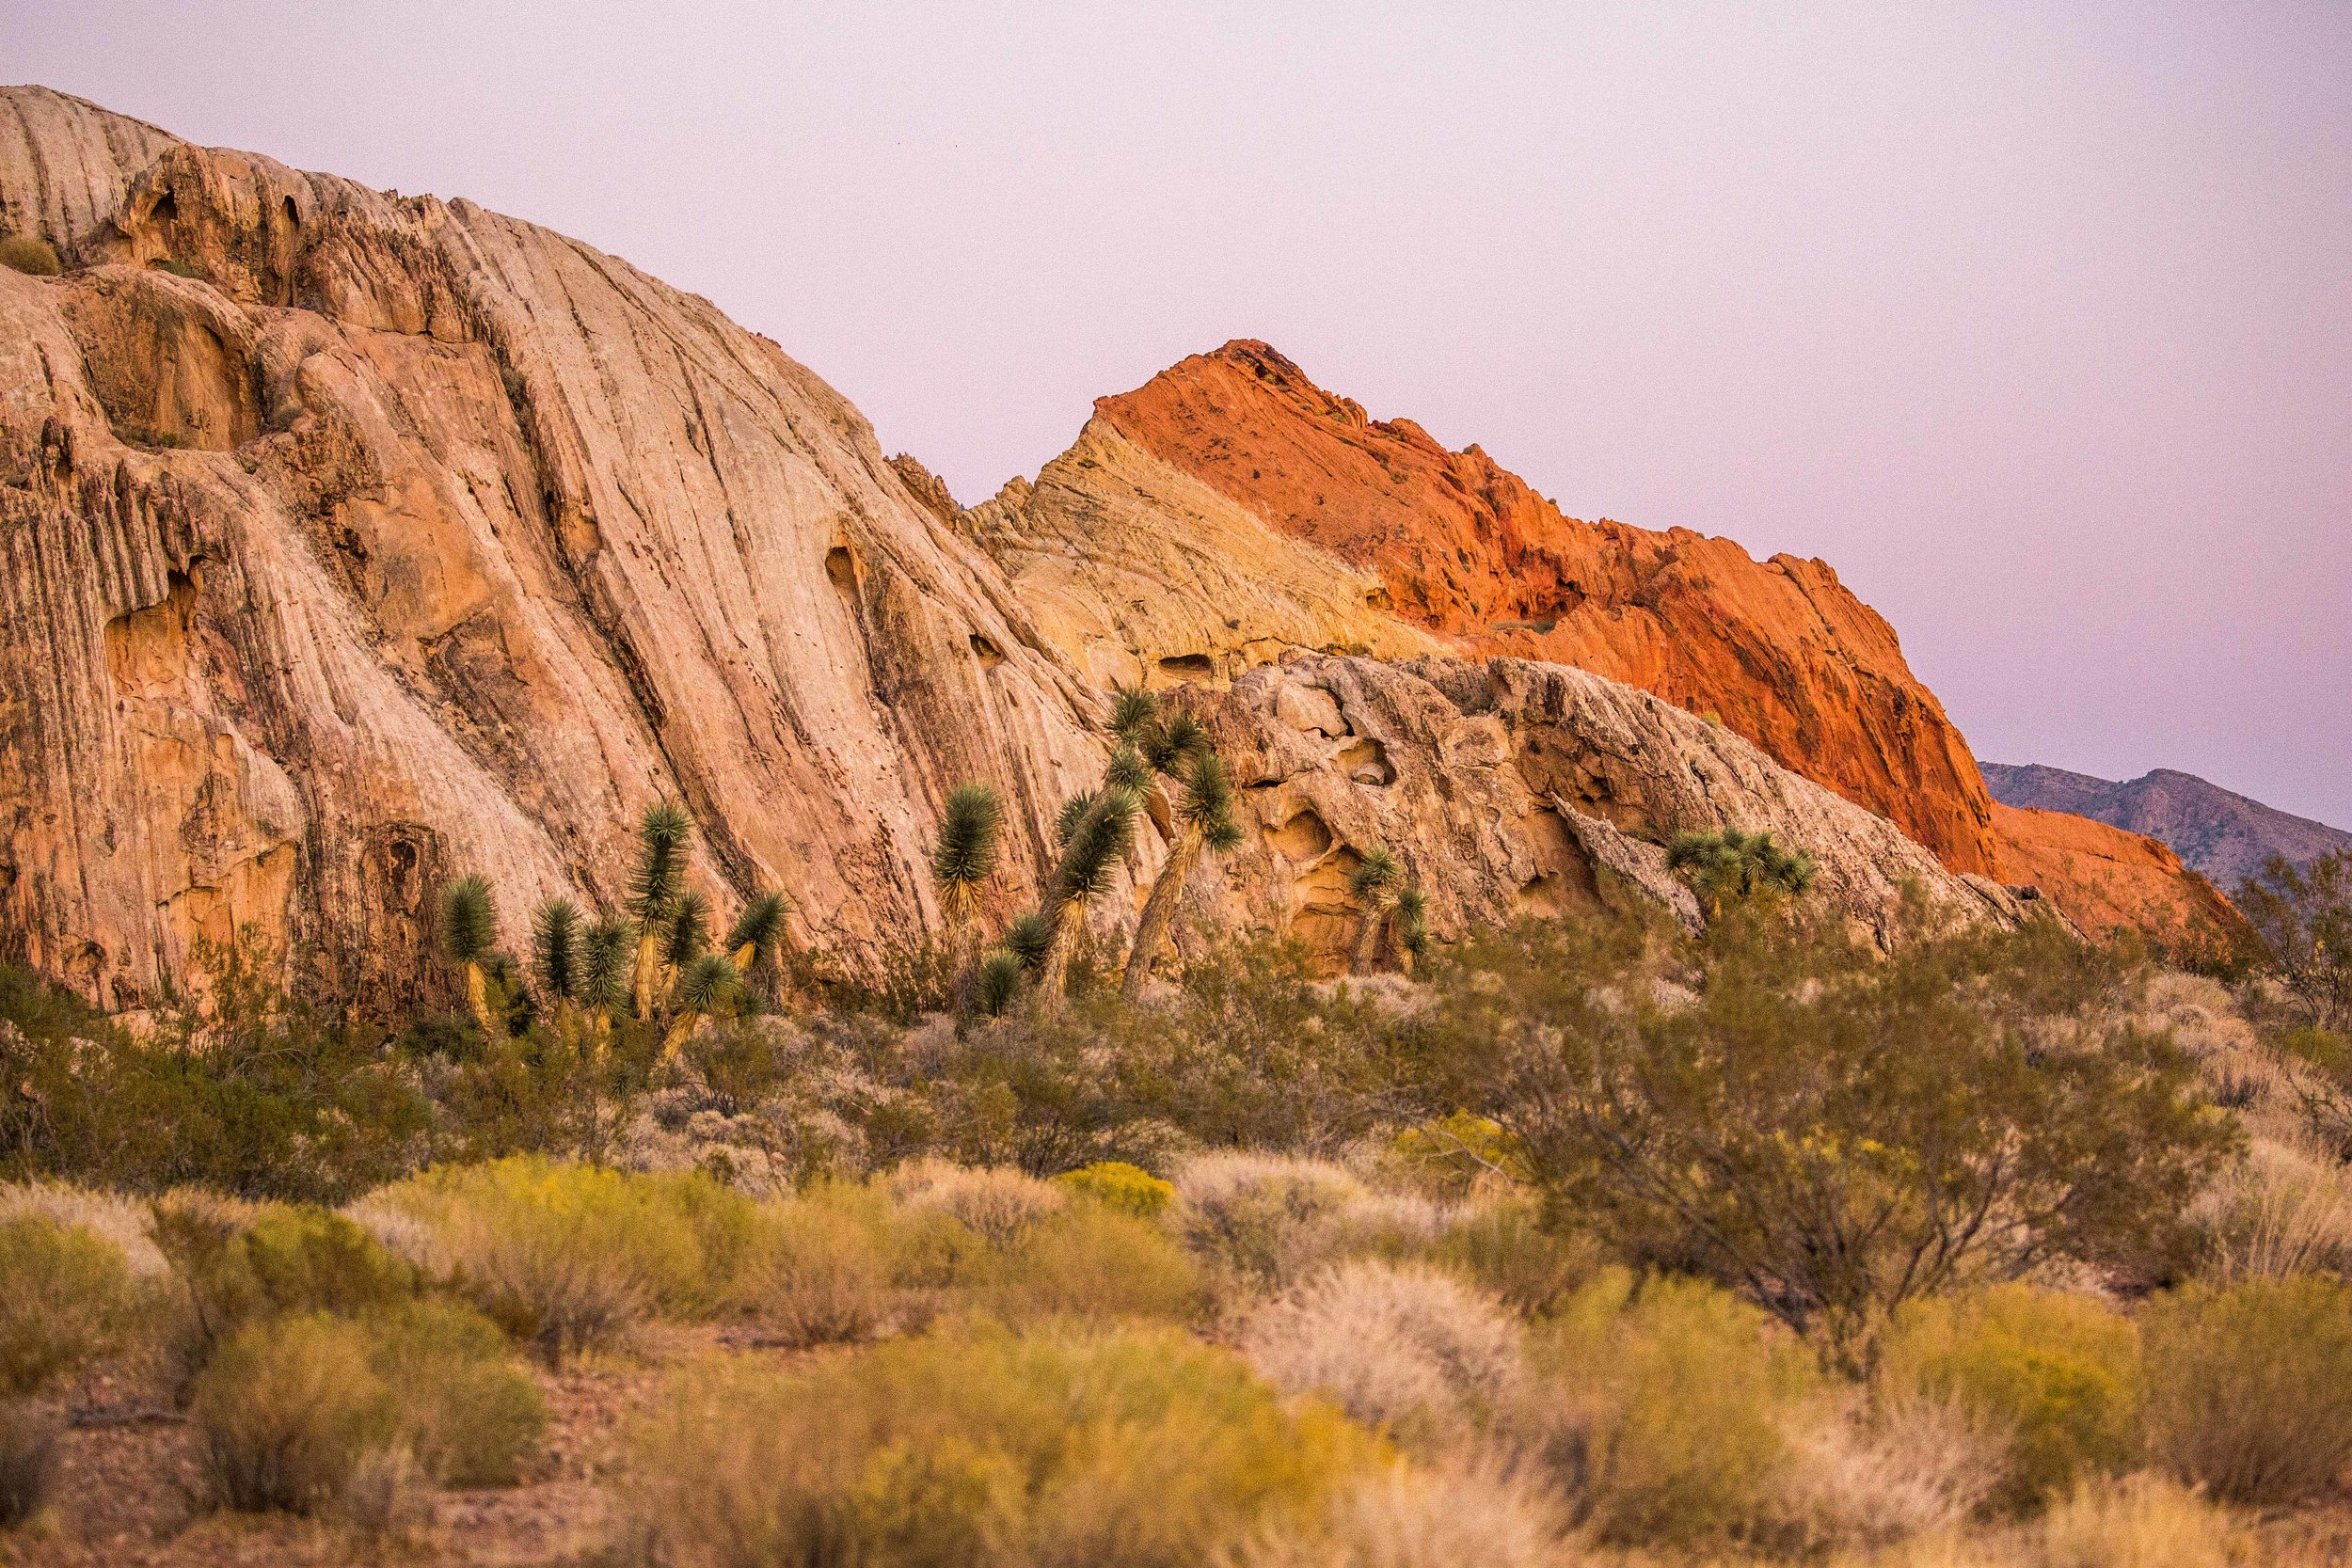 Gold Butte National Monument stands out through its impressive geology and colorful sandstone formations. The whole area looks like a true work of art.